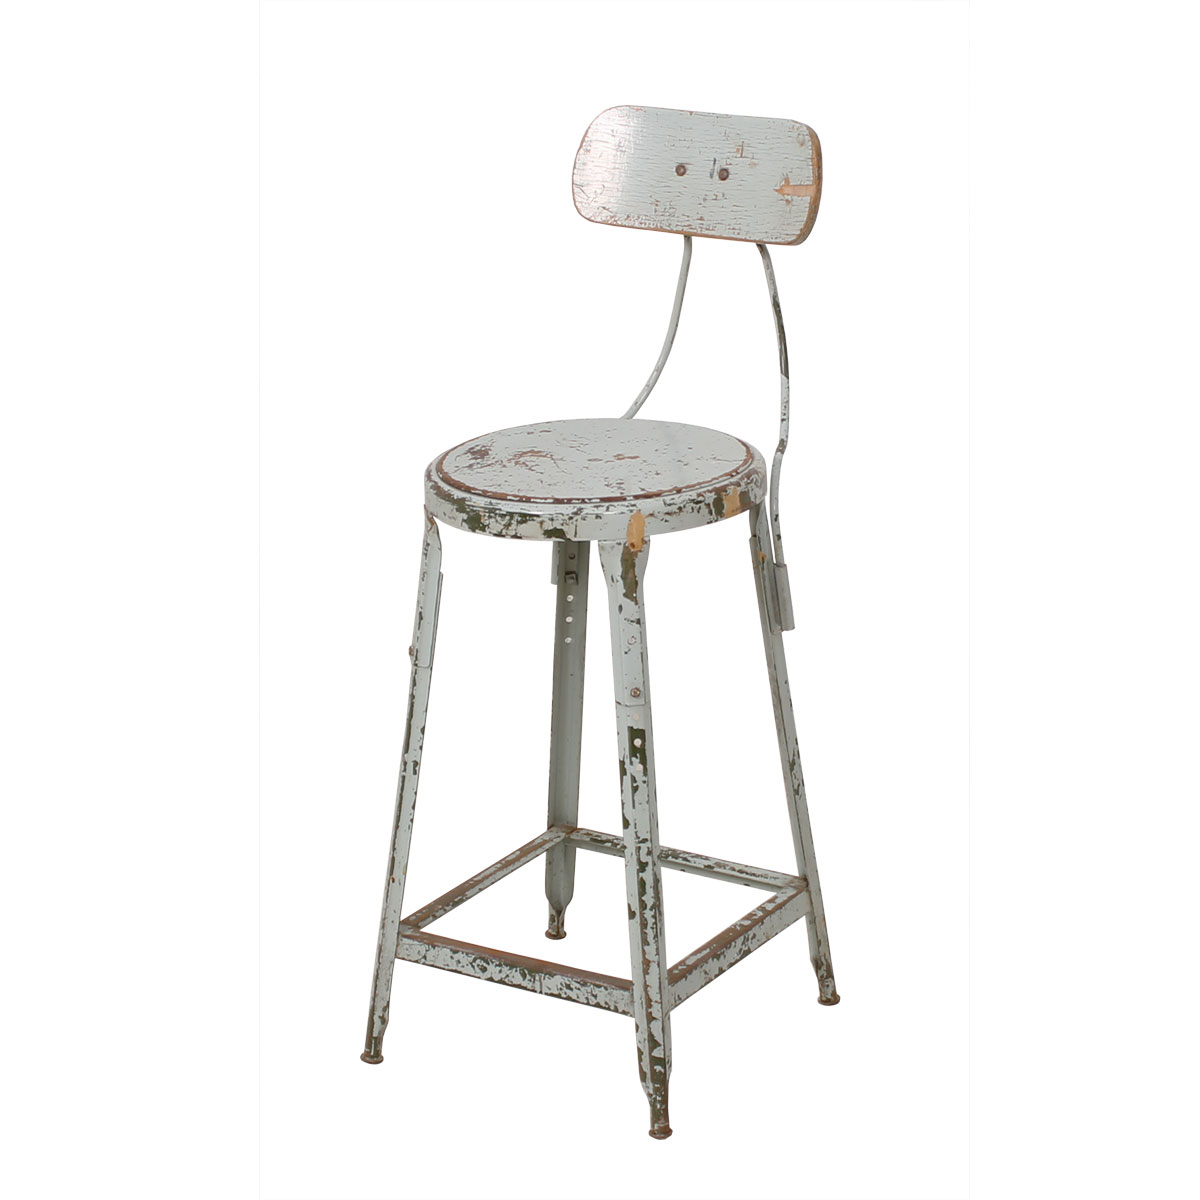 Vintage Industrial Chair w/ Pivoting Backrest